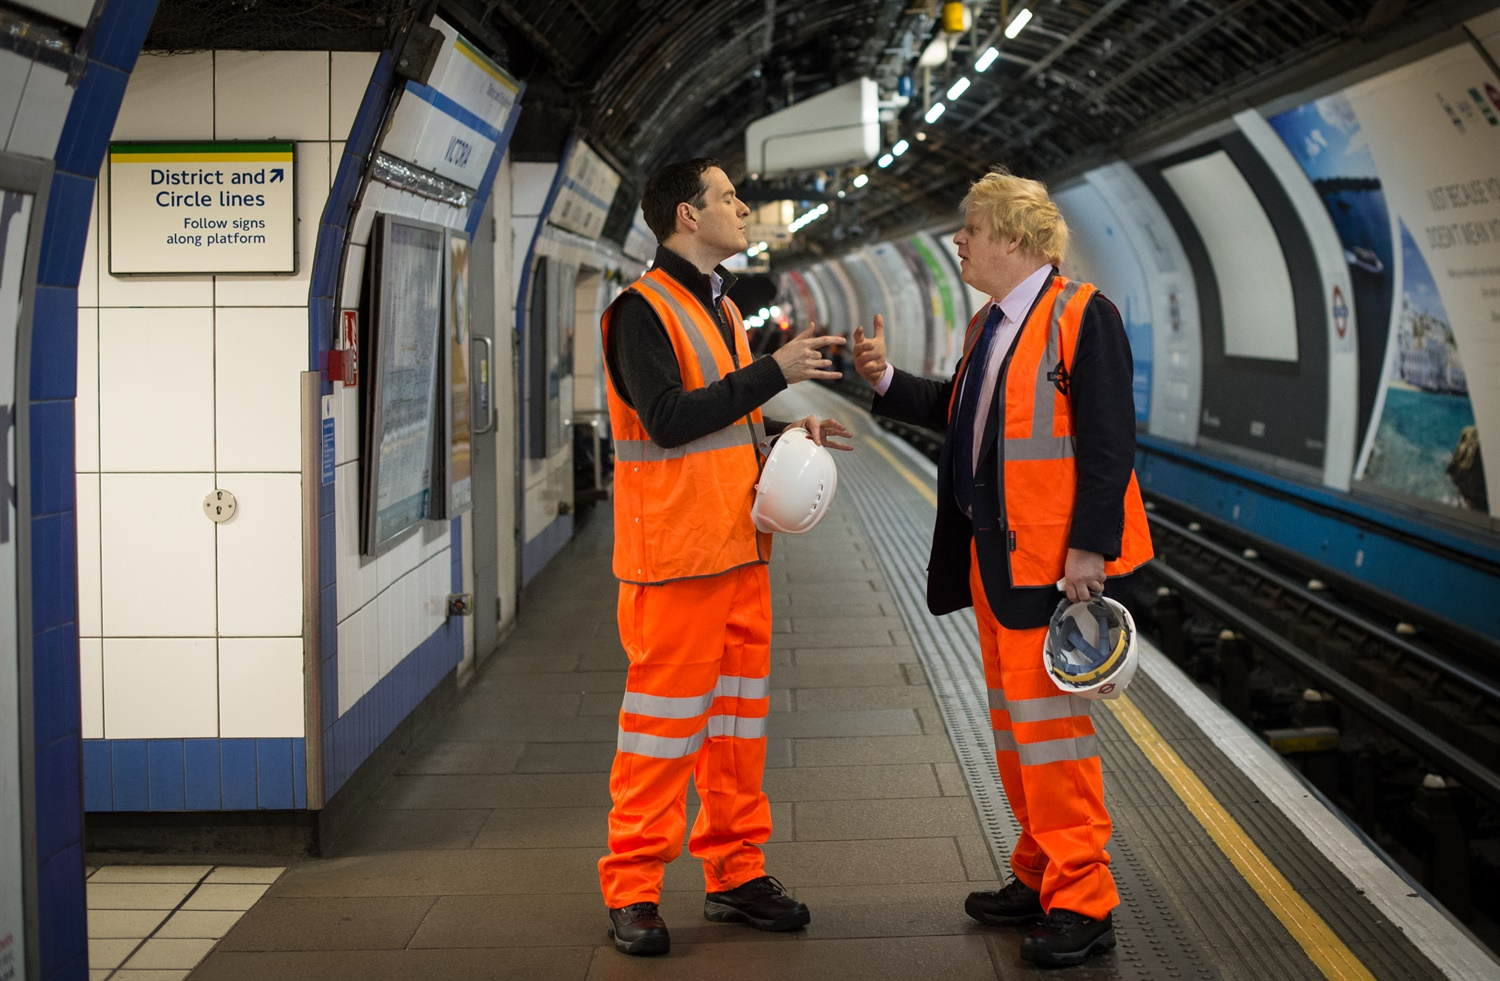 Osborne and Boris plans for more 24-hour Tube services dubbed 'pre-election stunt'